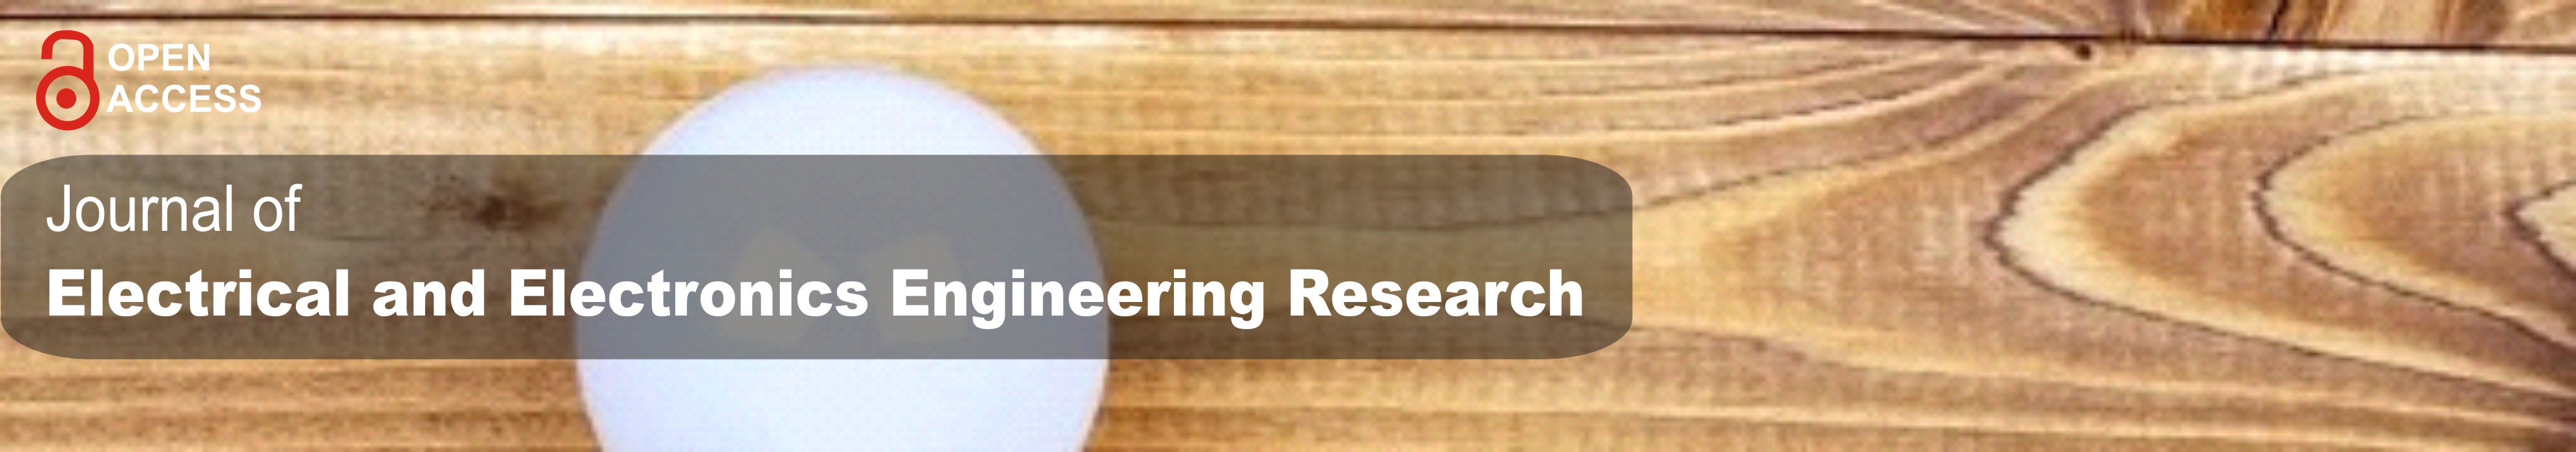 Journal of Electrical and Electronics Engineering Research